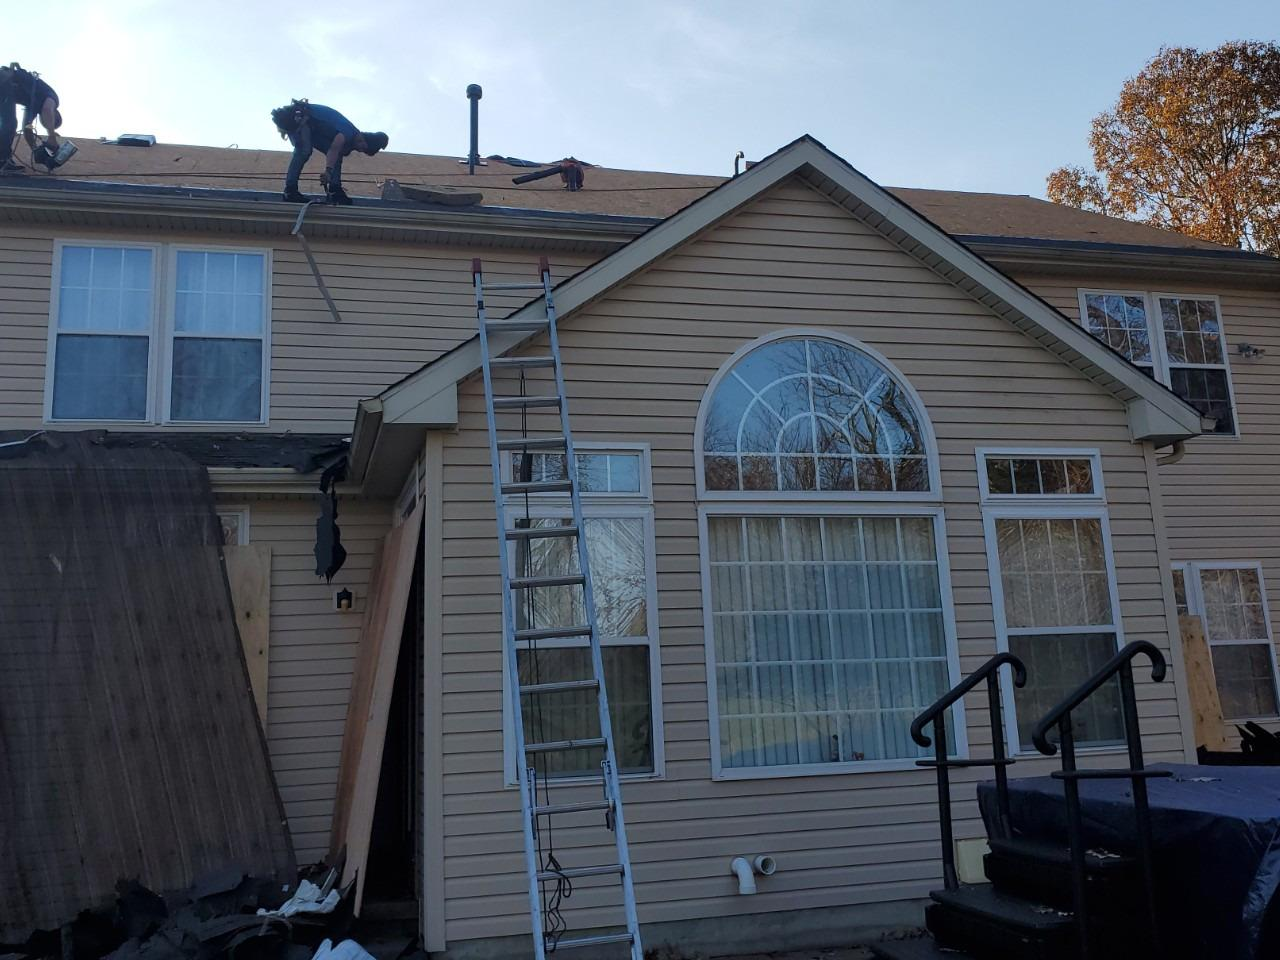 Redidential Roof Repair in Mullica Hill NJ - After Photo